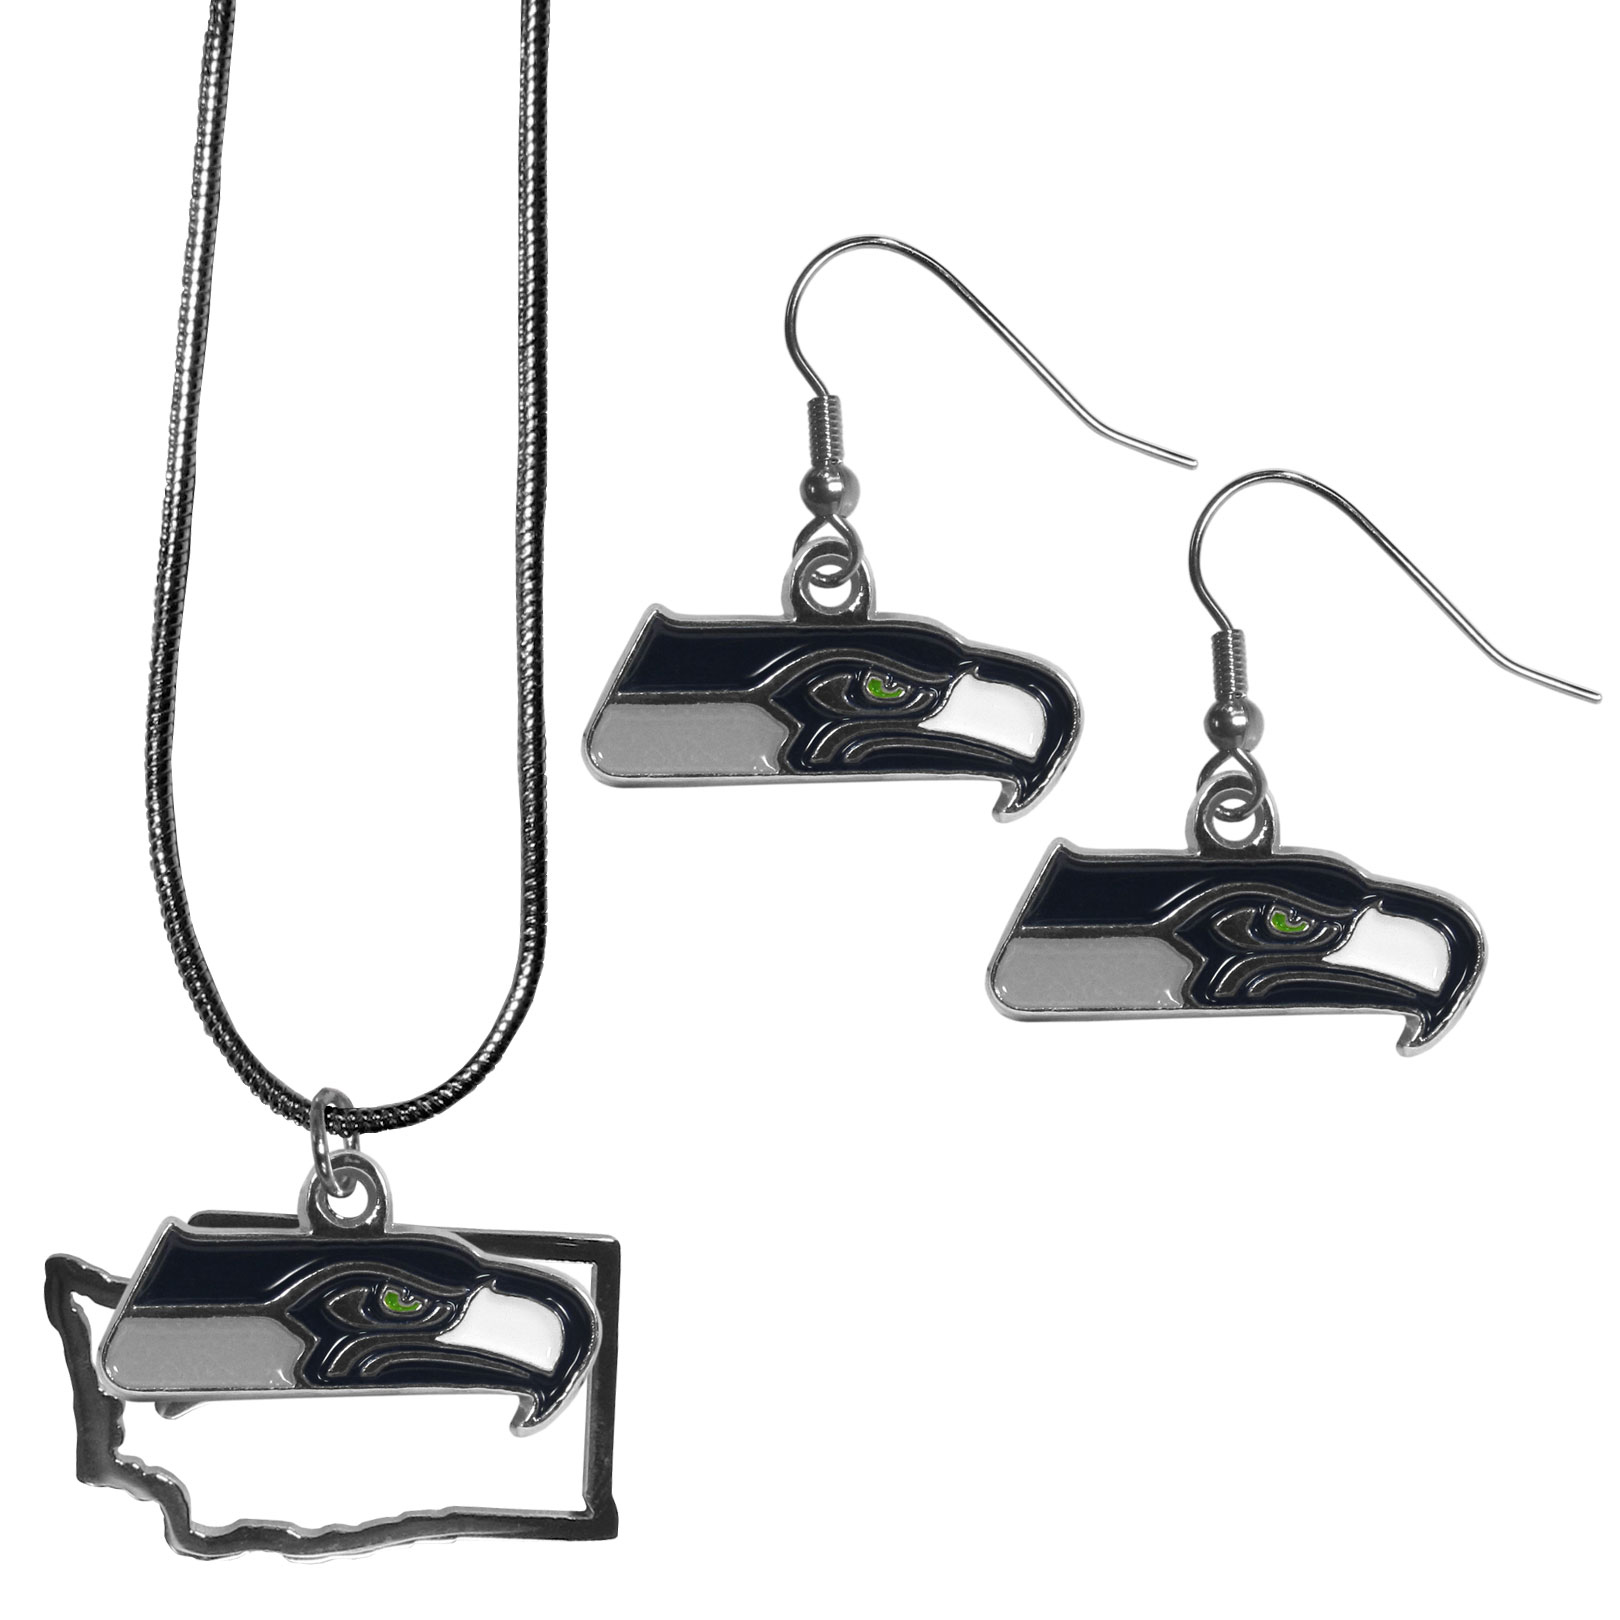 Seattle Seahawks Dangle Earrings and State Necklace Set - Get in on the trend! State themes are a trend that just keeps getting more popular and this jewelry set takes the state style and give it a sporty twist with a Seattle Seahawks necklace that features an Arizona state outline charm paired with a beautiful team charm and matching team charm dangle earrings. The earrings feature hypoallergenic fishhook posts that are nickel free.